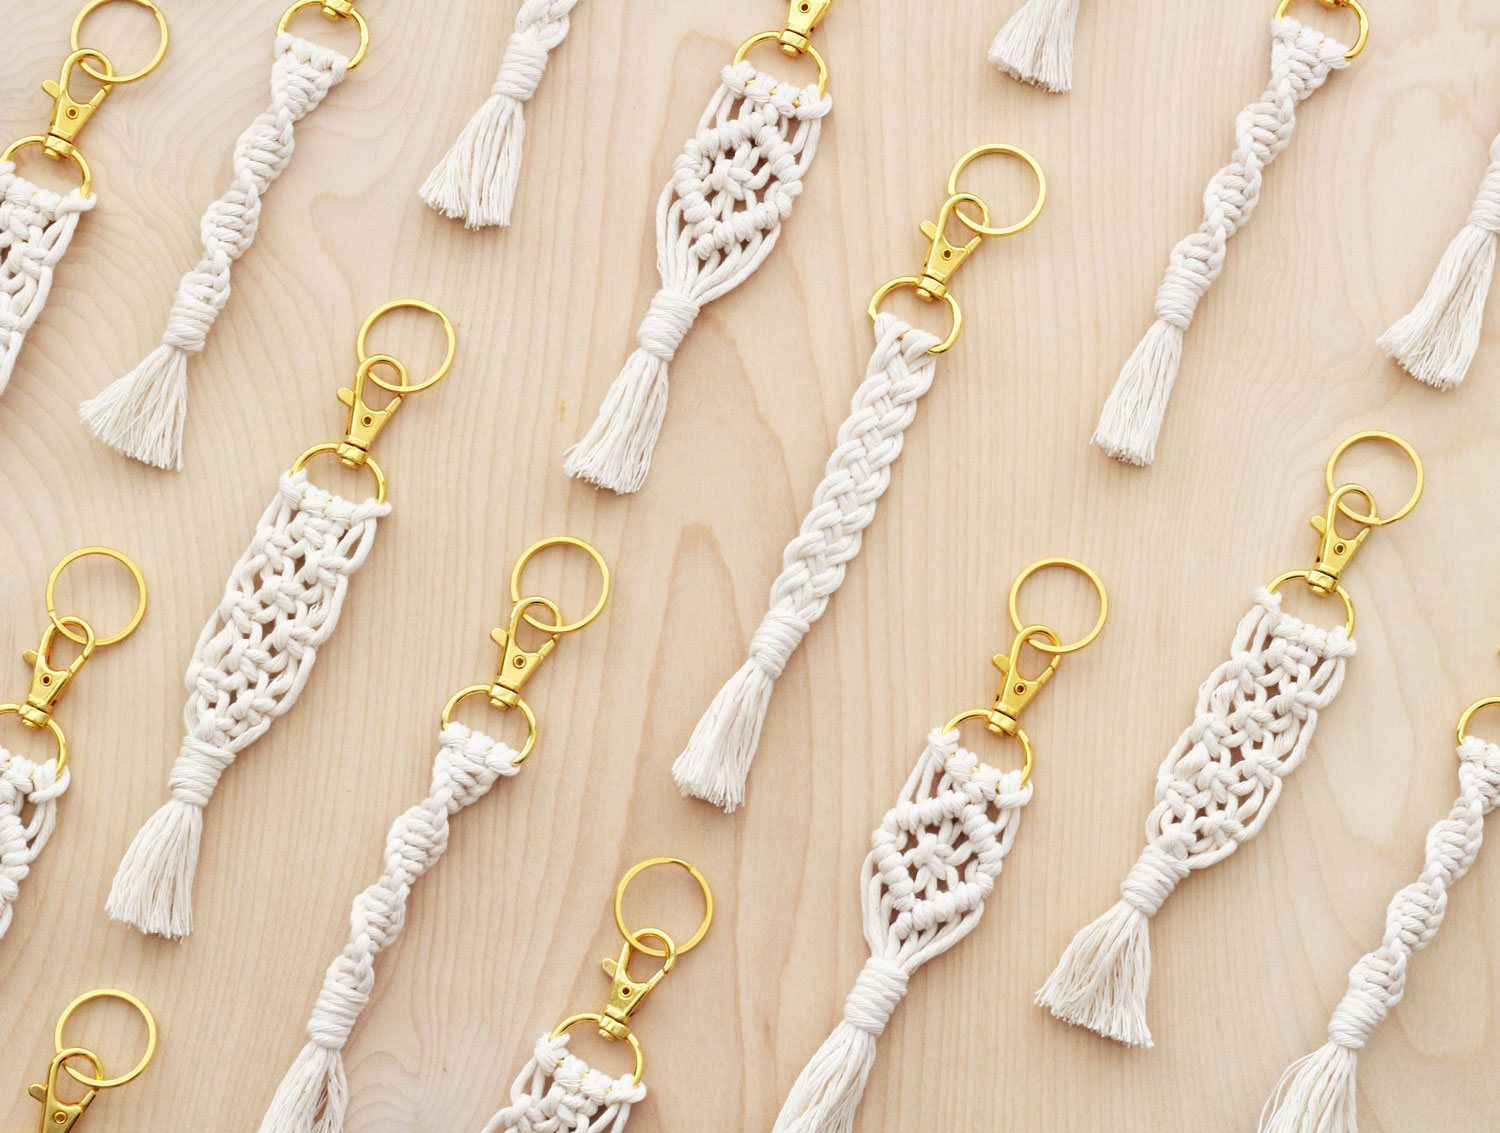 These macrame keychains are handcrafted from soft white cotton cord and attached to a gold swivel snap hook. Also included is